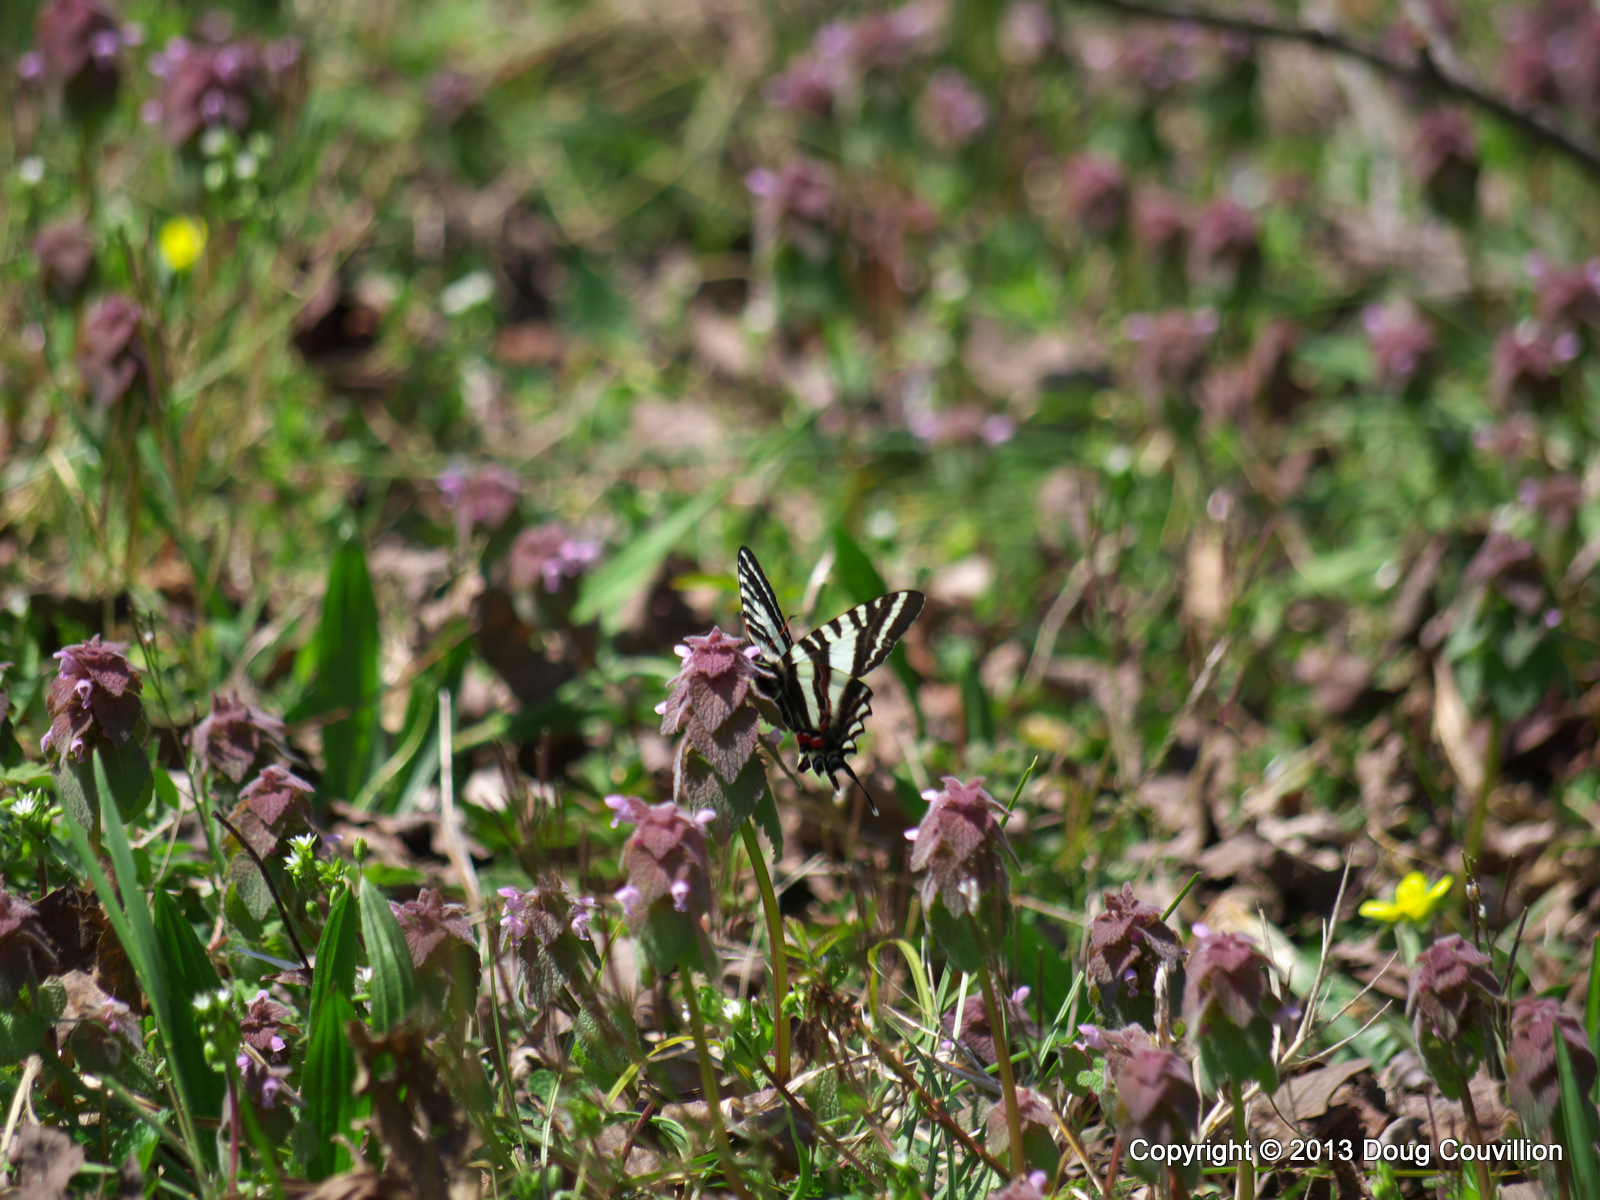 photograph of a Zebra Swallowtail butterfly with Henbit and Buttercups